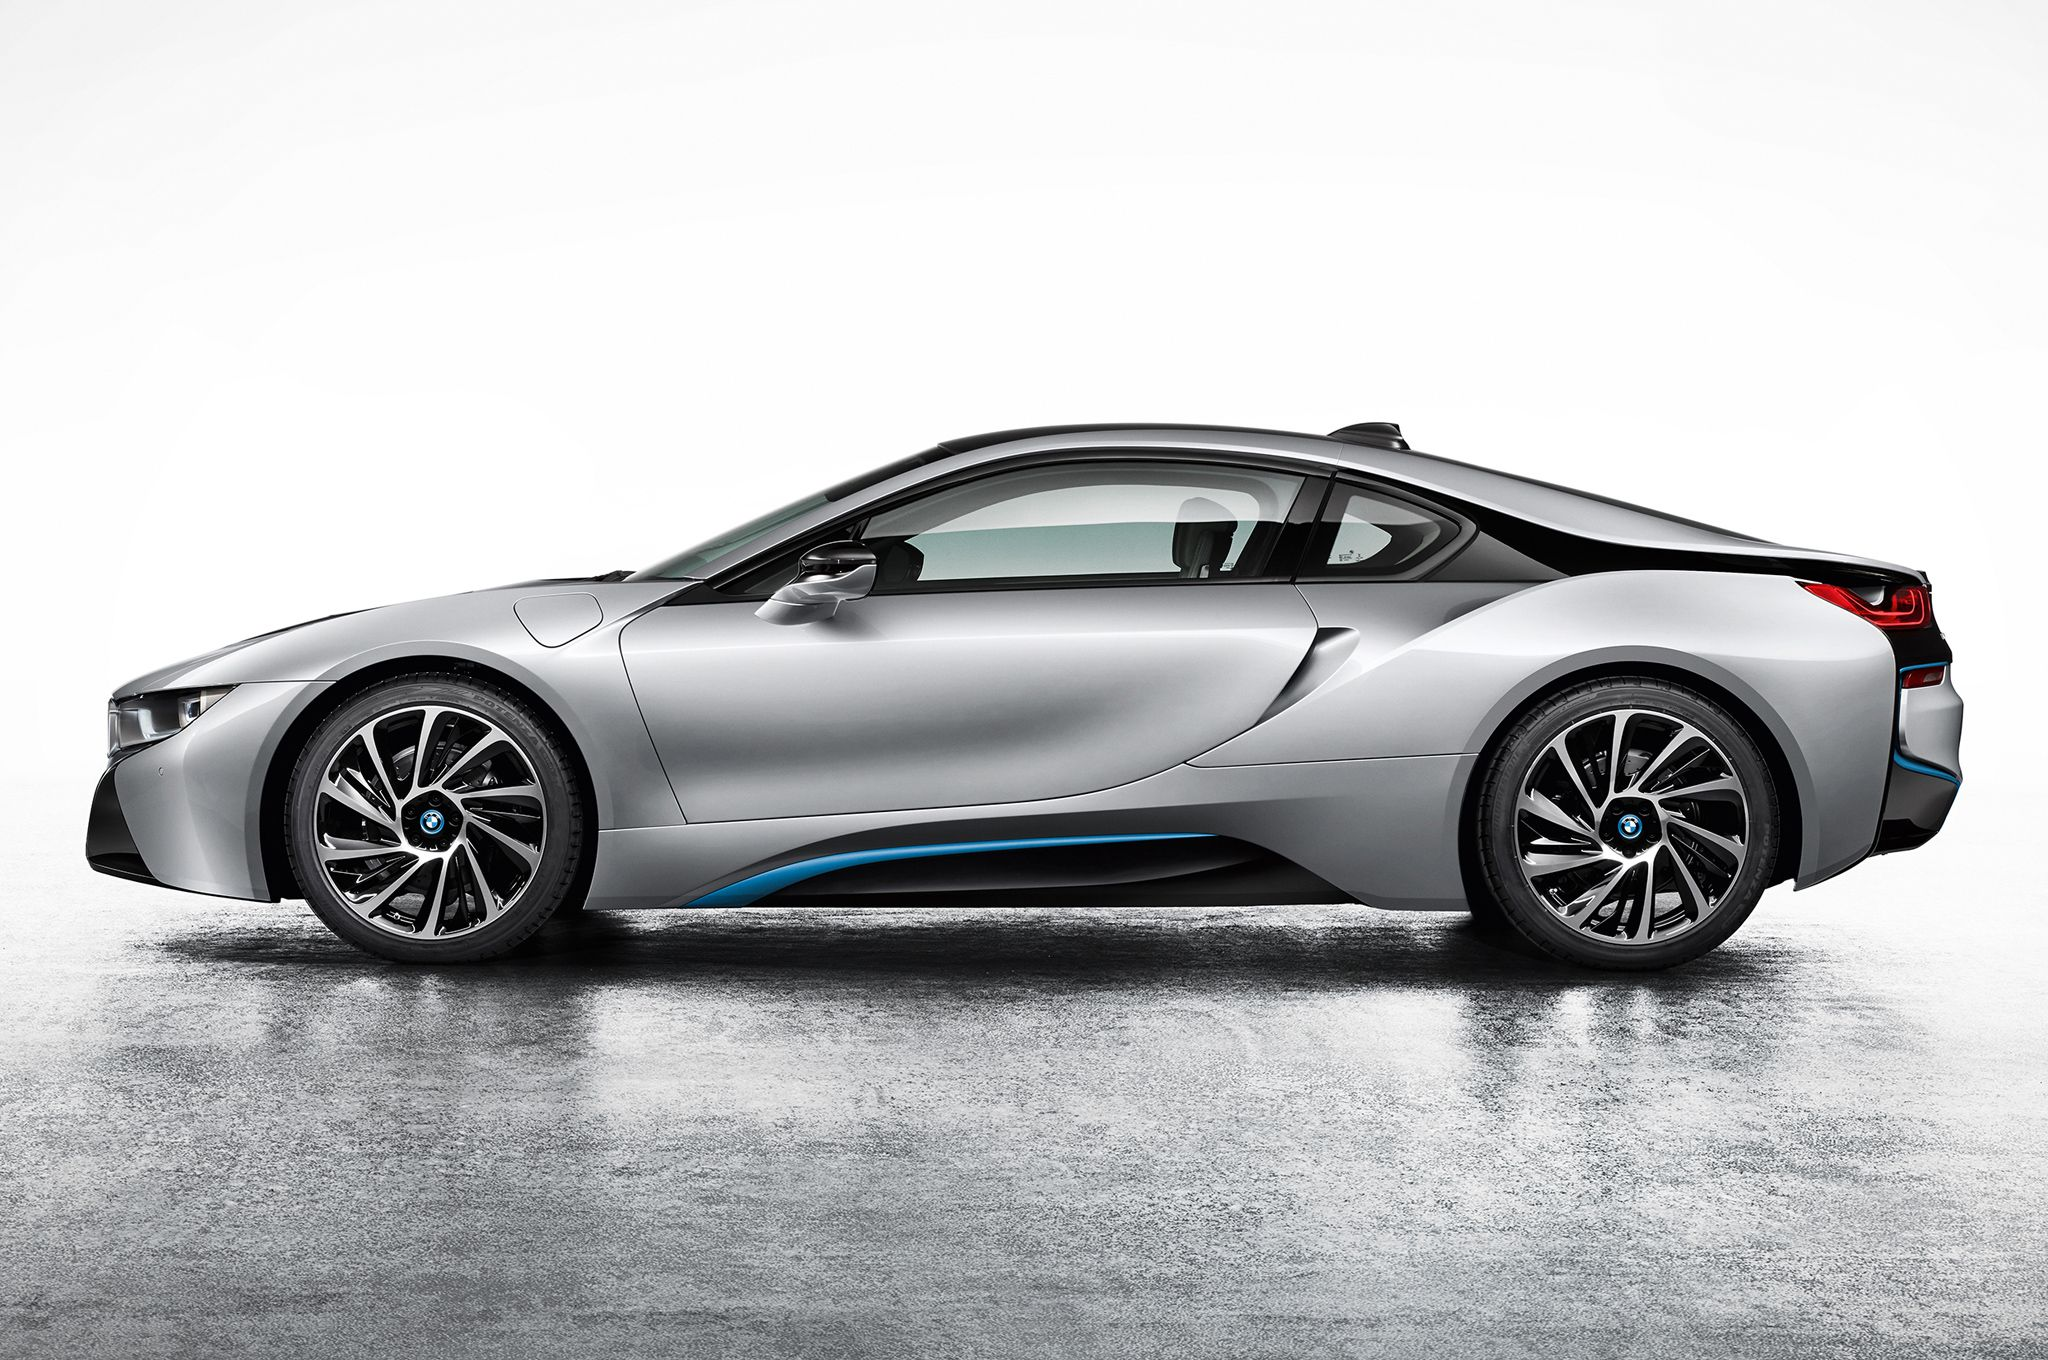 2014 BMW i8 Hybrid Side View Wallpaper BMW Wallpaper